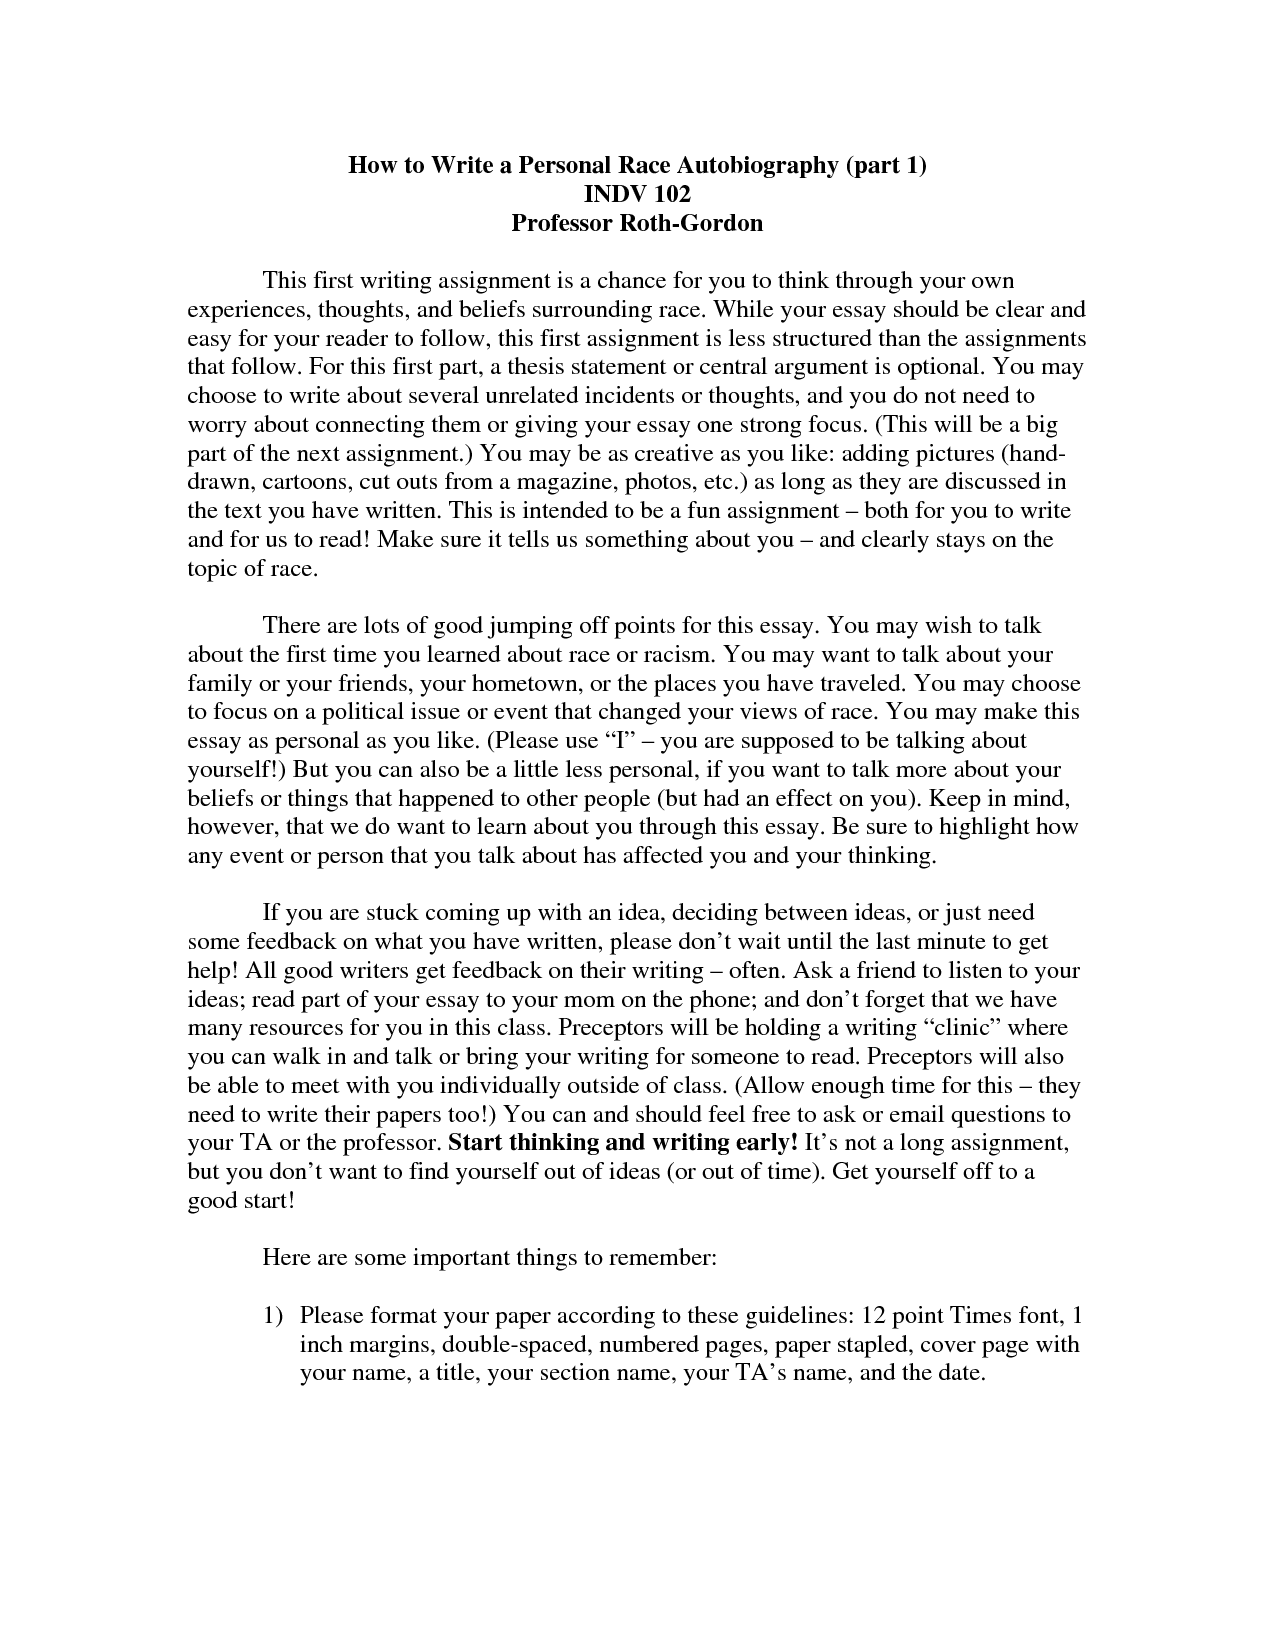 020 Essay Example Autobiography Best Photos Of Personal Narrative An Autobiographical How To Write Writing Outline For Scholarship College Admissions Unique About Yourself Tagalog Bio Students Full